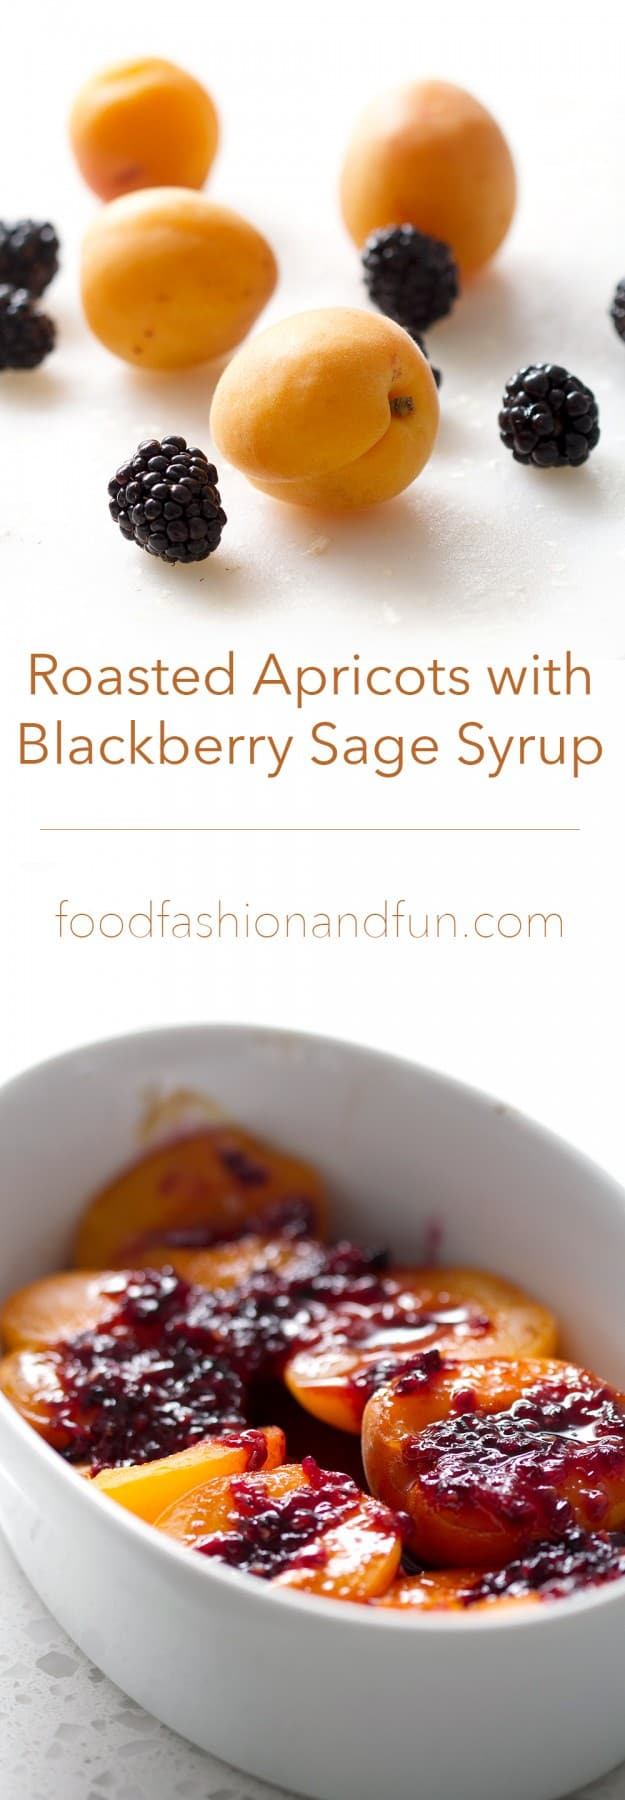 Roasted-Apricots-with-Blueberry-Syrup-pin